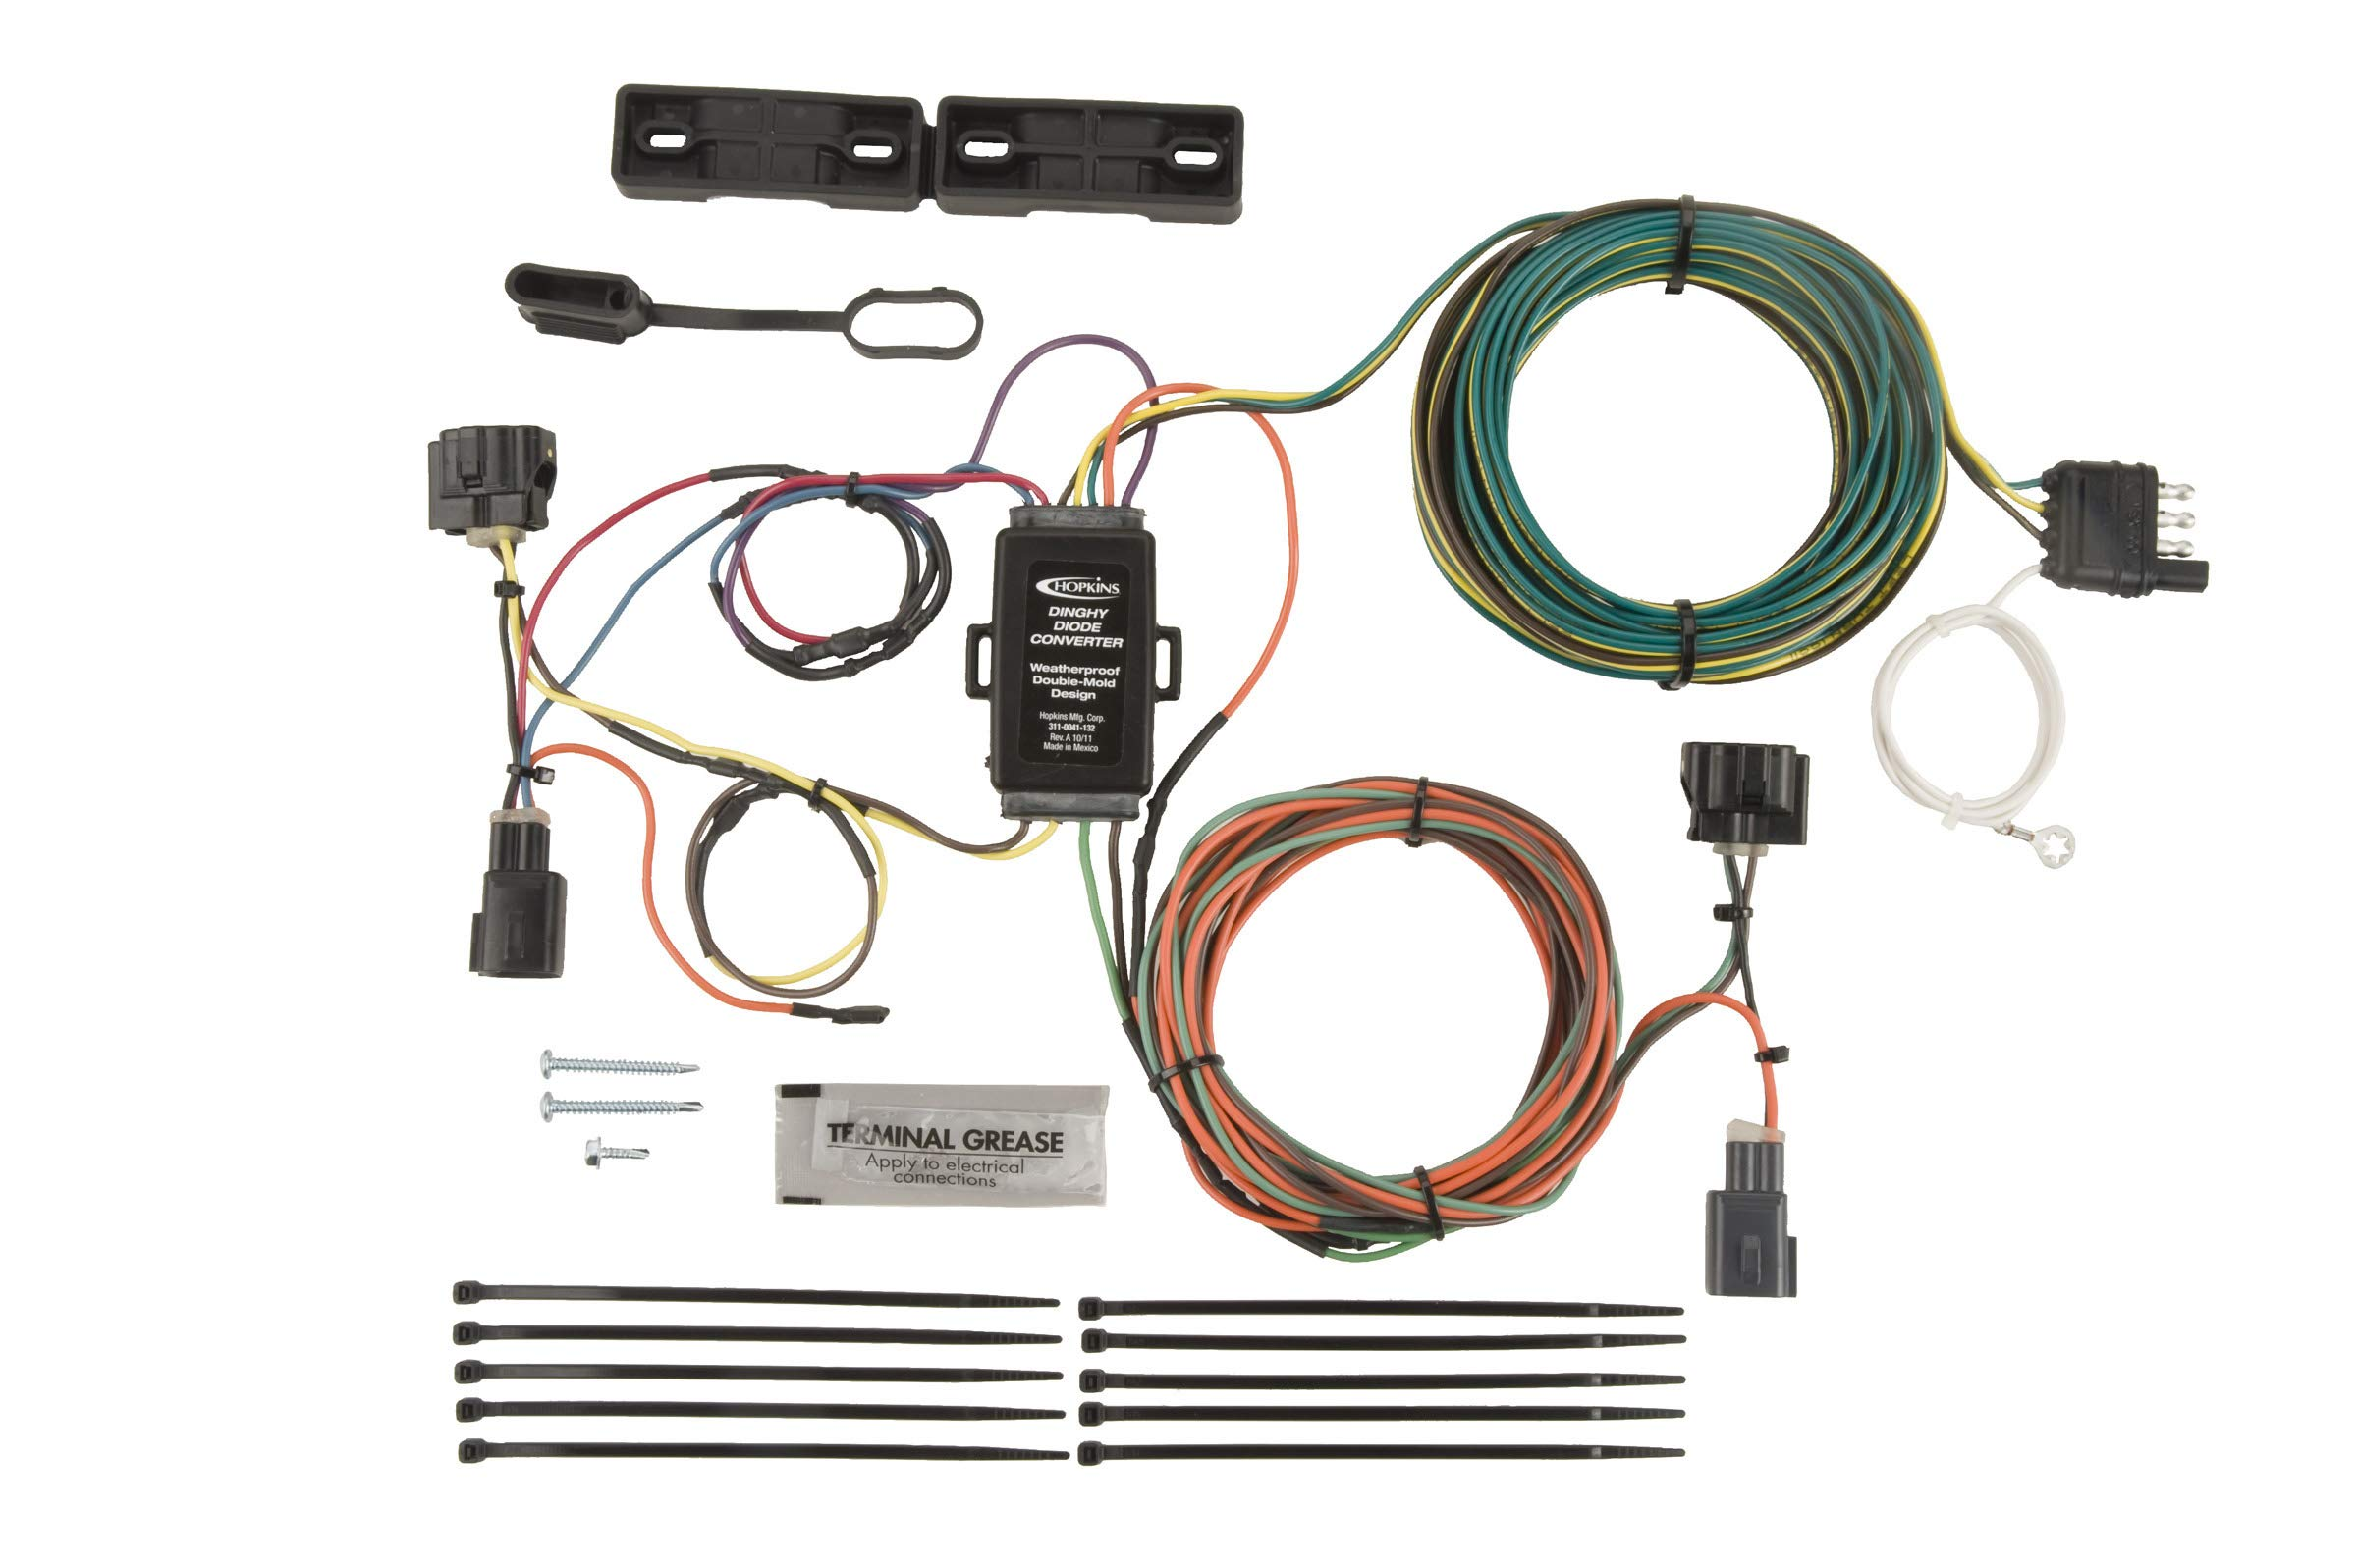 Hopkins 56202 Plug-In Simple Towed Vehicle Wiring Kit by Hopkins Towing Solutions